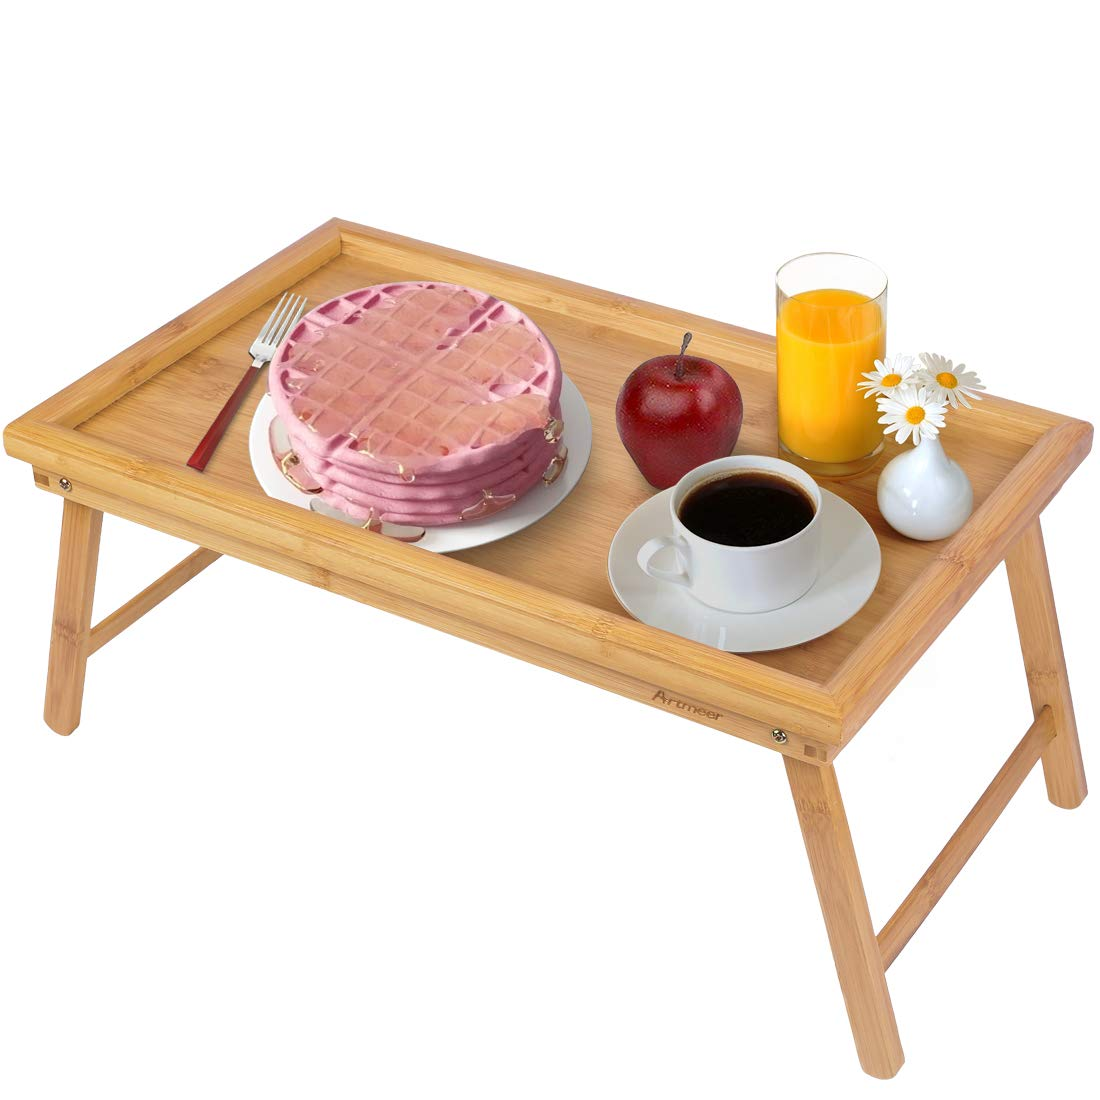 Artmeer Bed Tray Table with Folding Legs,Serving Breakfast in Bed or Use As a TV Table, Laptop Computer Tray, Snack Tray